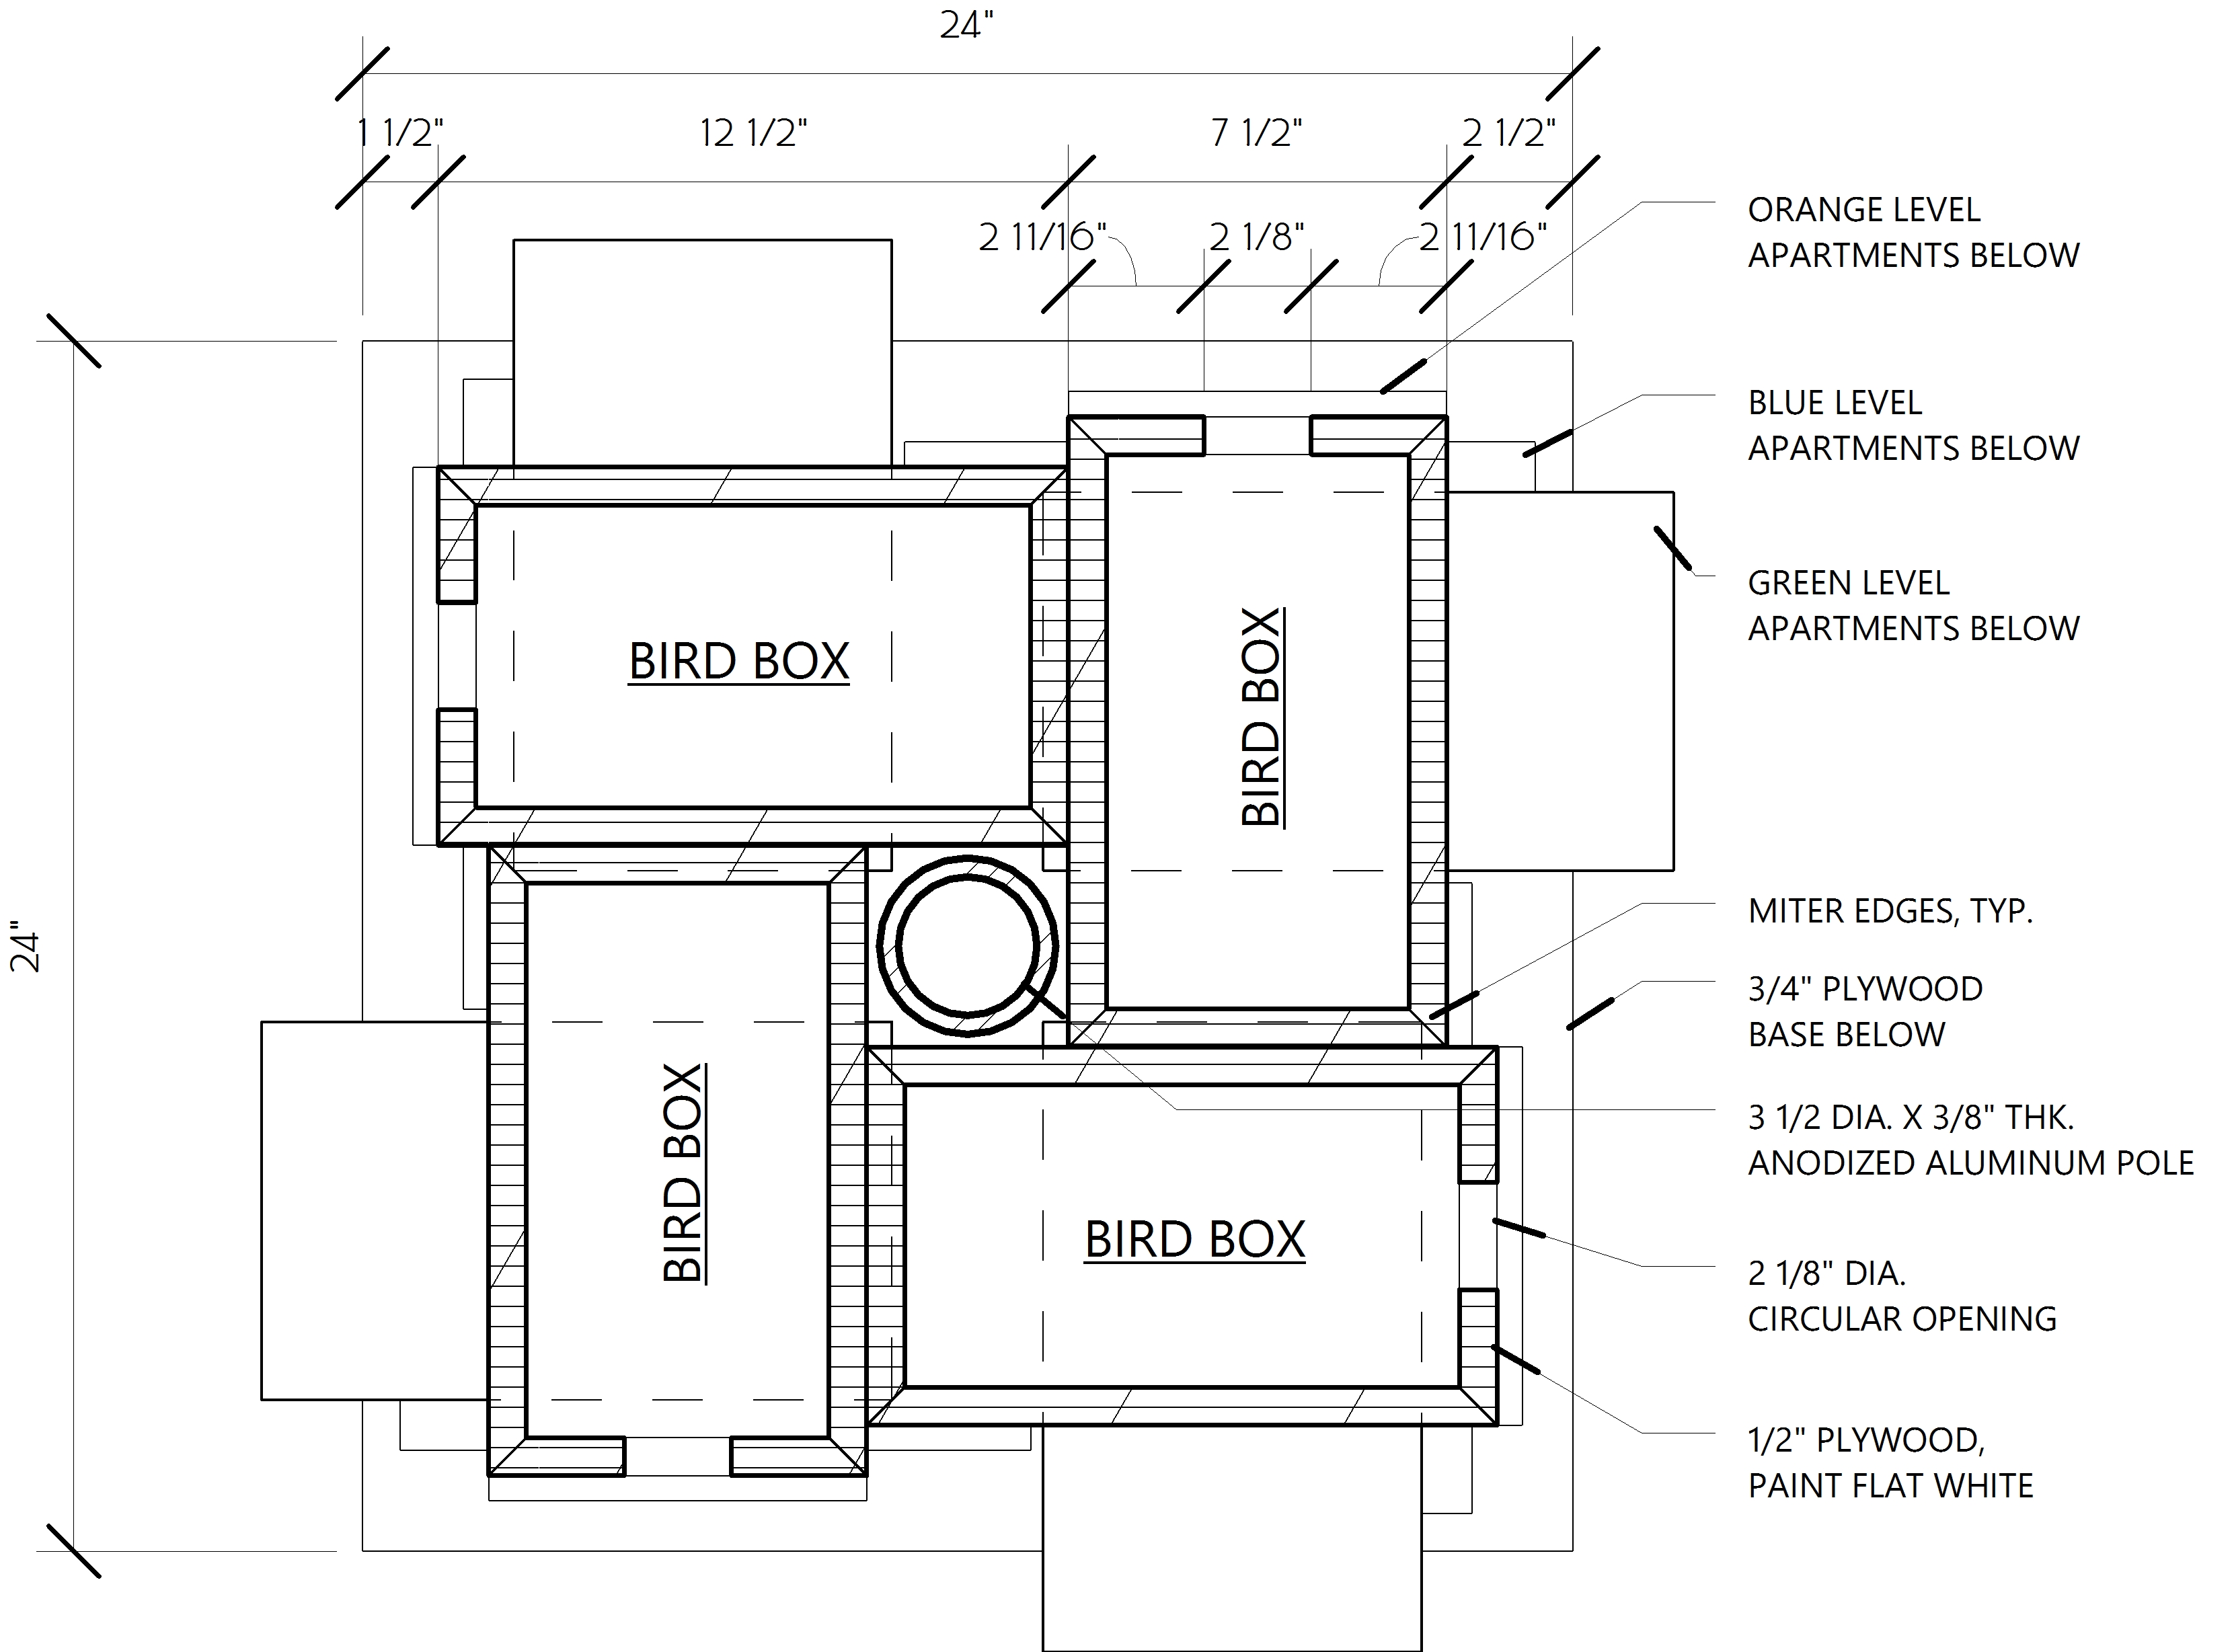 stunning purple martin house plans photos - fresh today designs